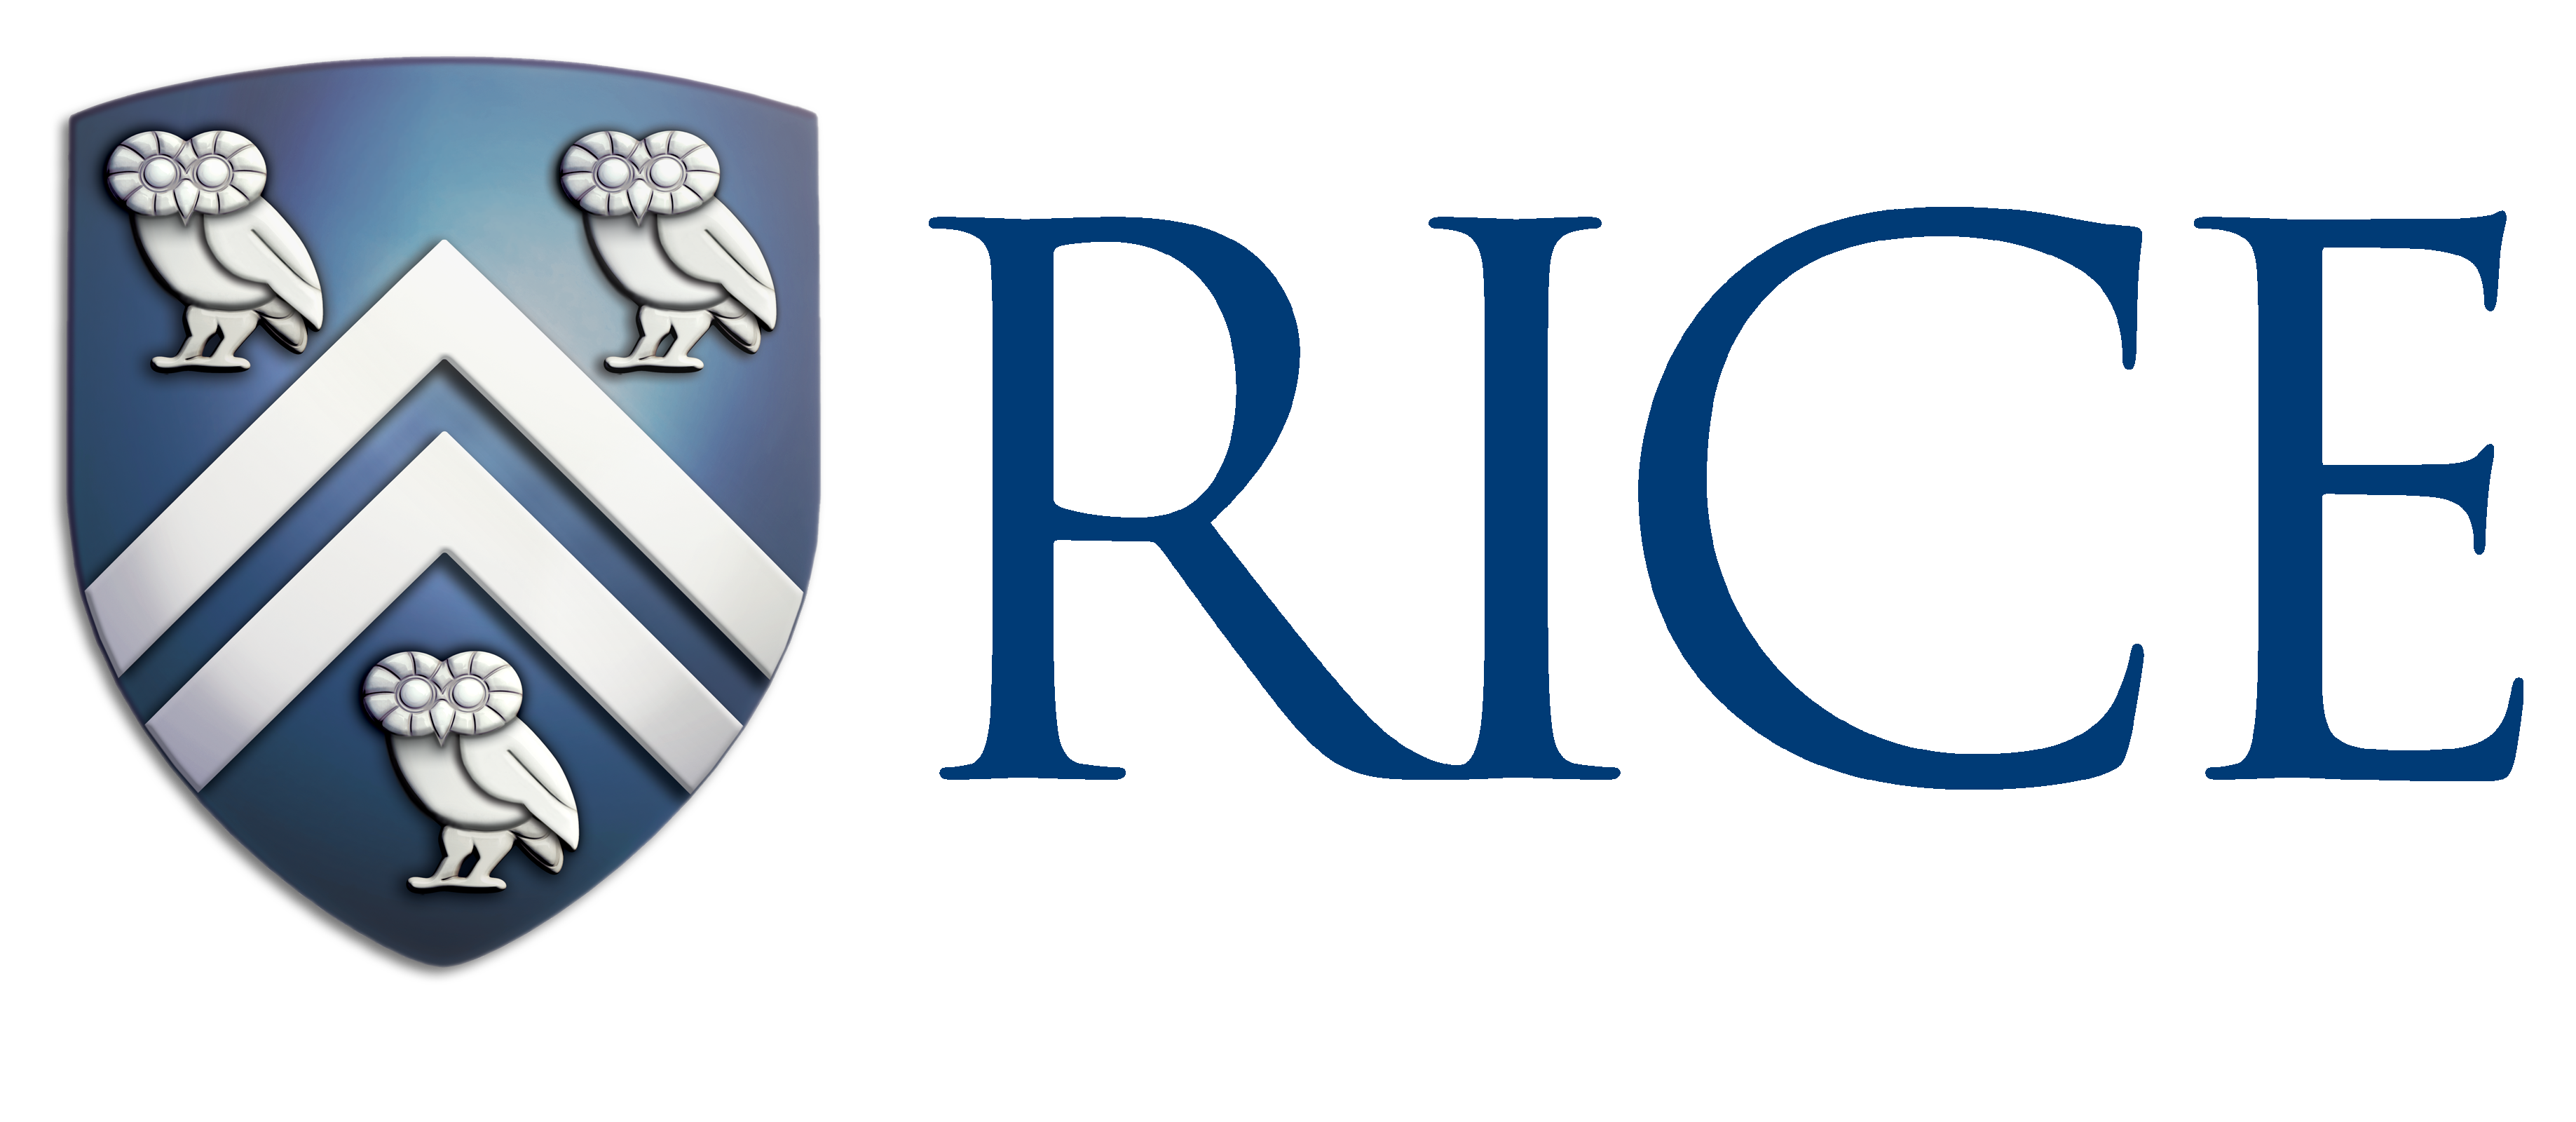 Rice university logo png. Downloads and tools